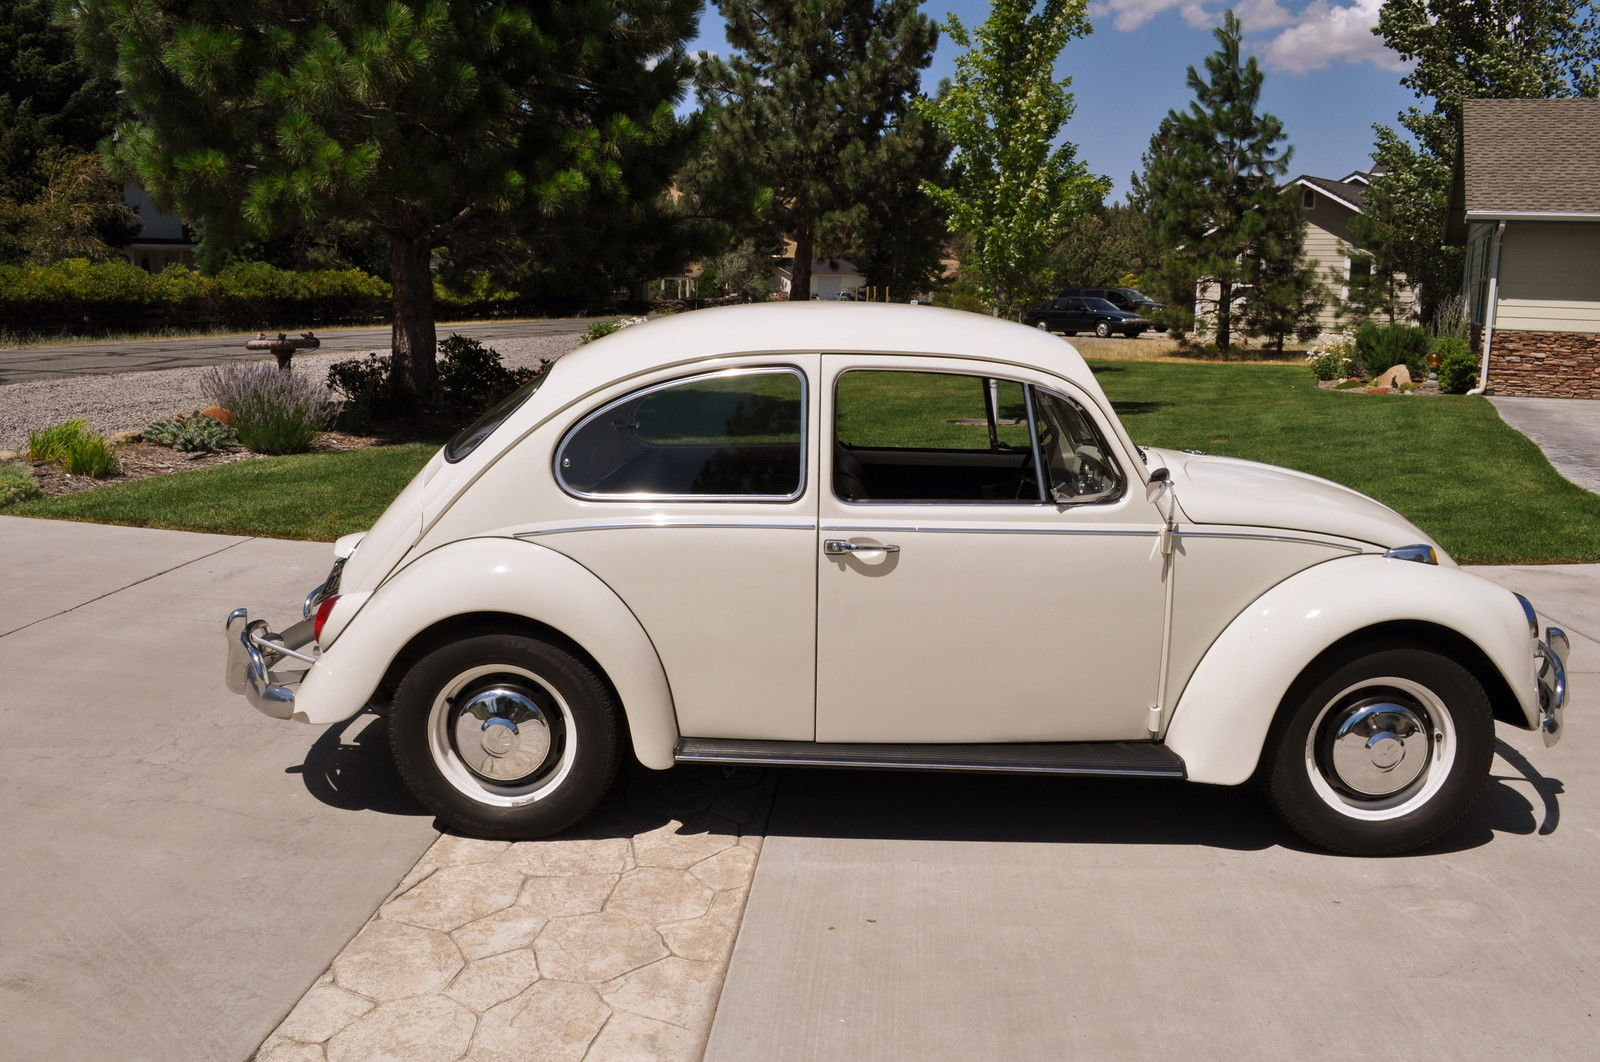 SOLD— L282 Lotus White '67 Beetle – 1967 VW Beetle